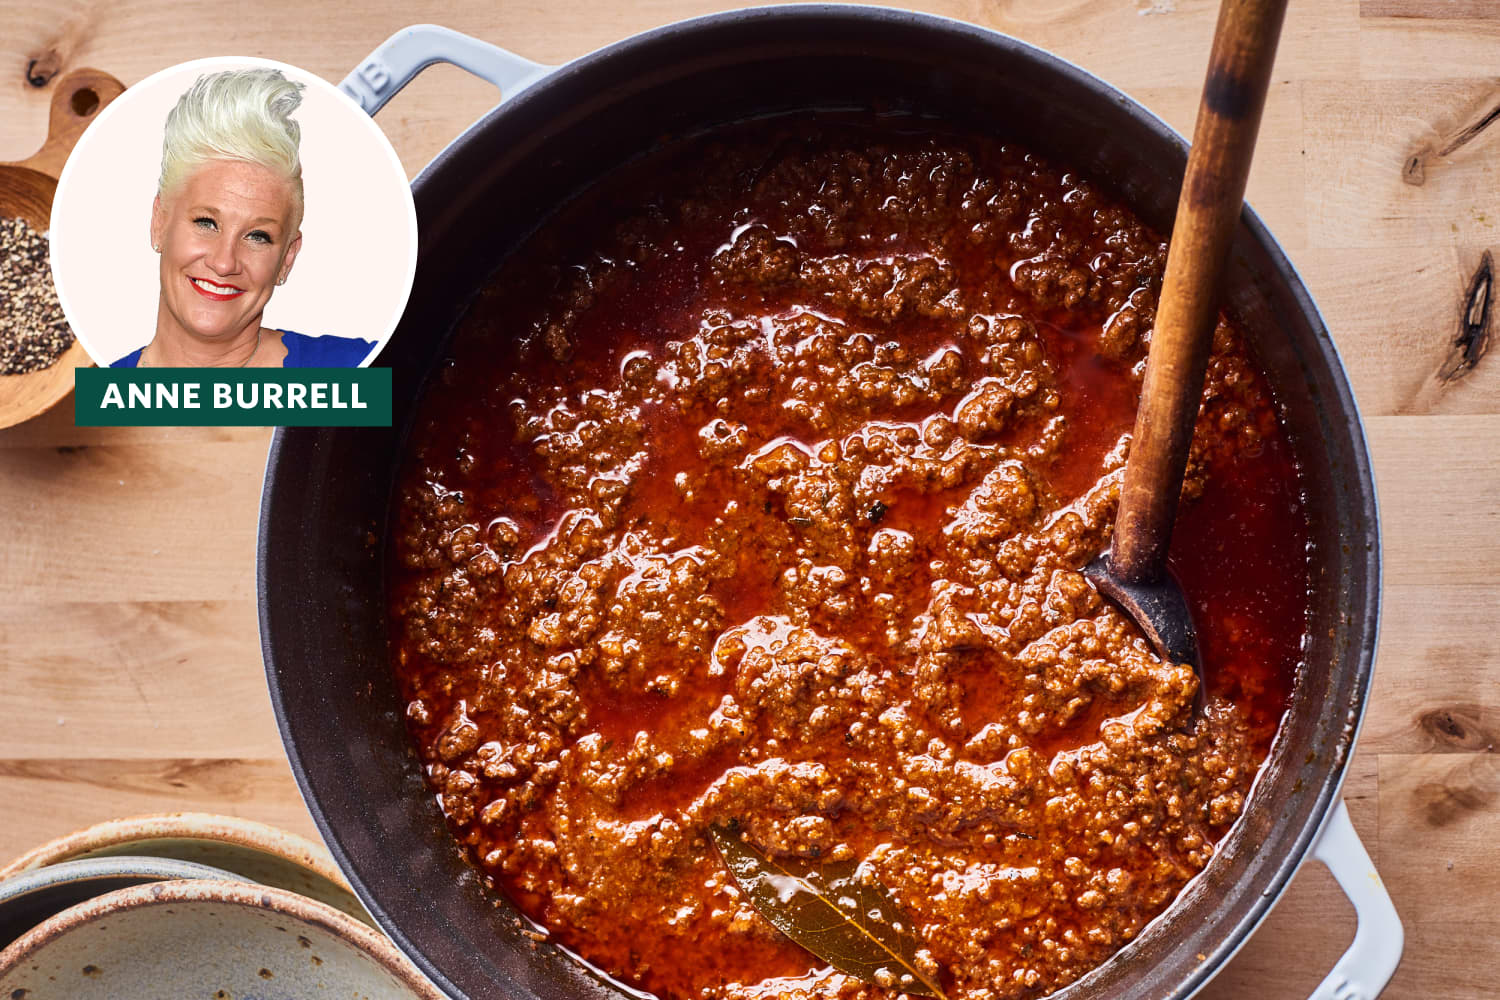 I Tried Anne Burrell's 5-Star Pasta Bolognese (It's Made with a Shocking Amount of Wine)